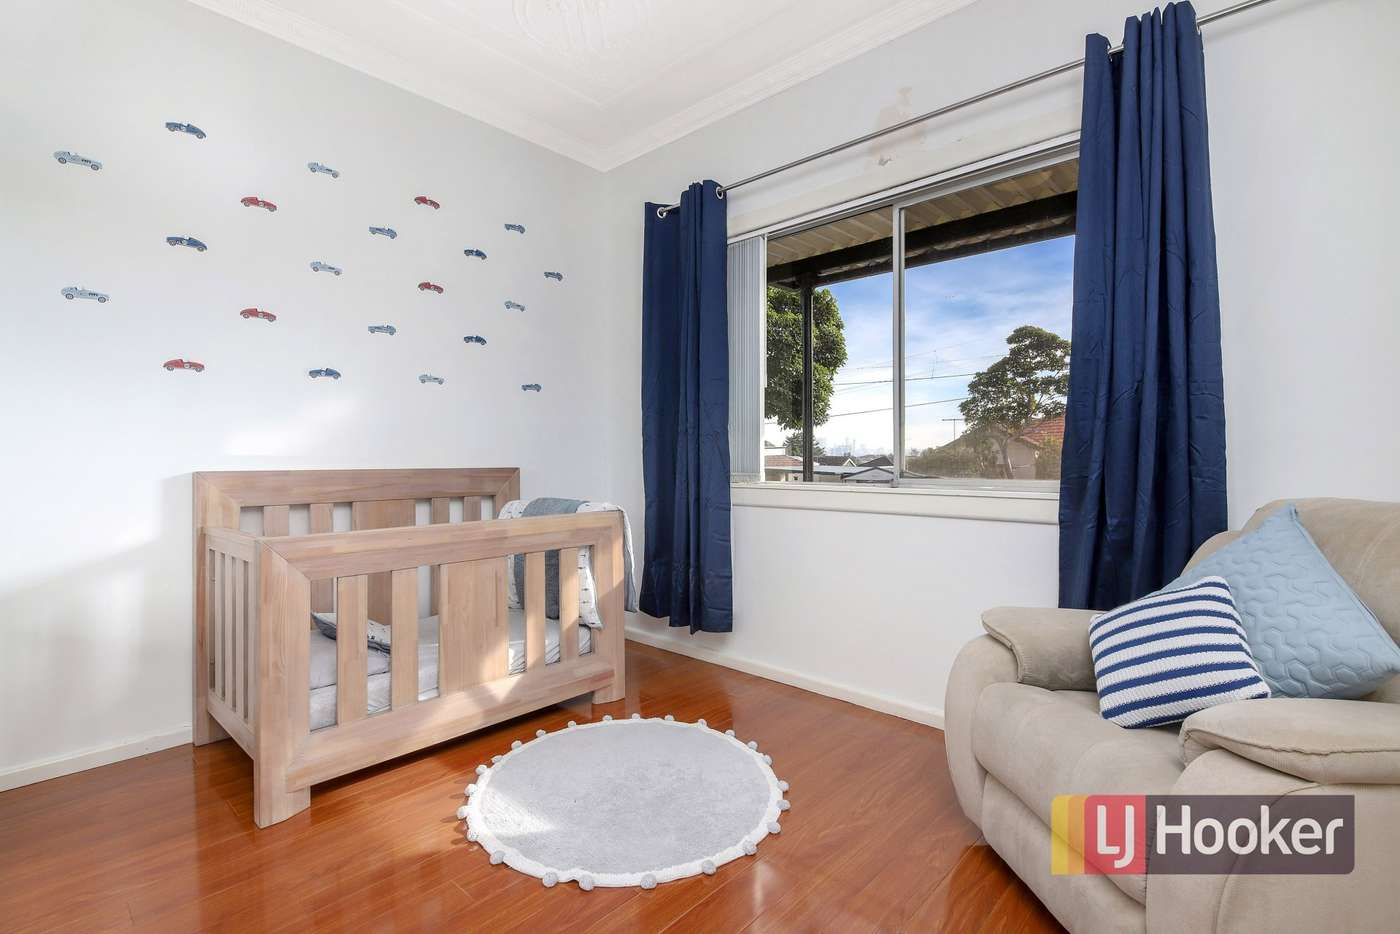 Sixth view of Homely house listing, 42 Chiswick Rd, Auburn NSW 2144